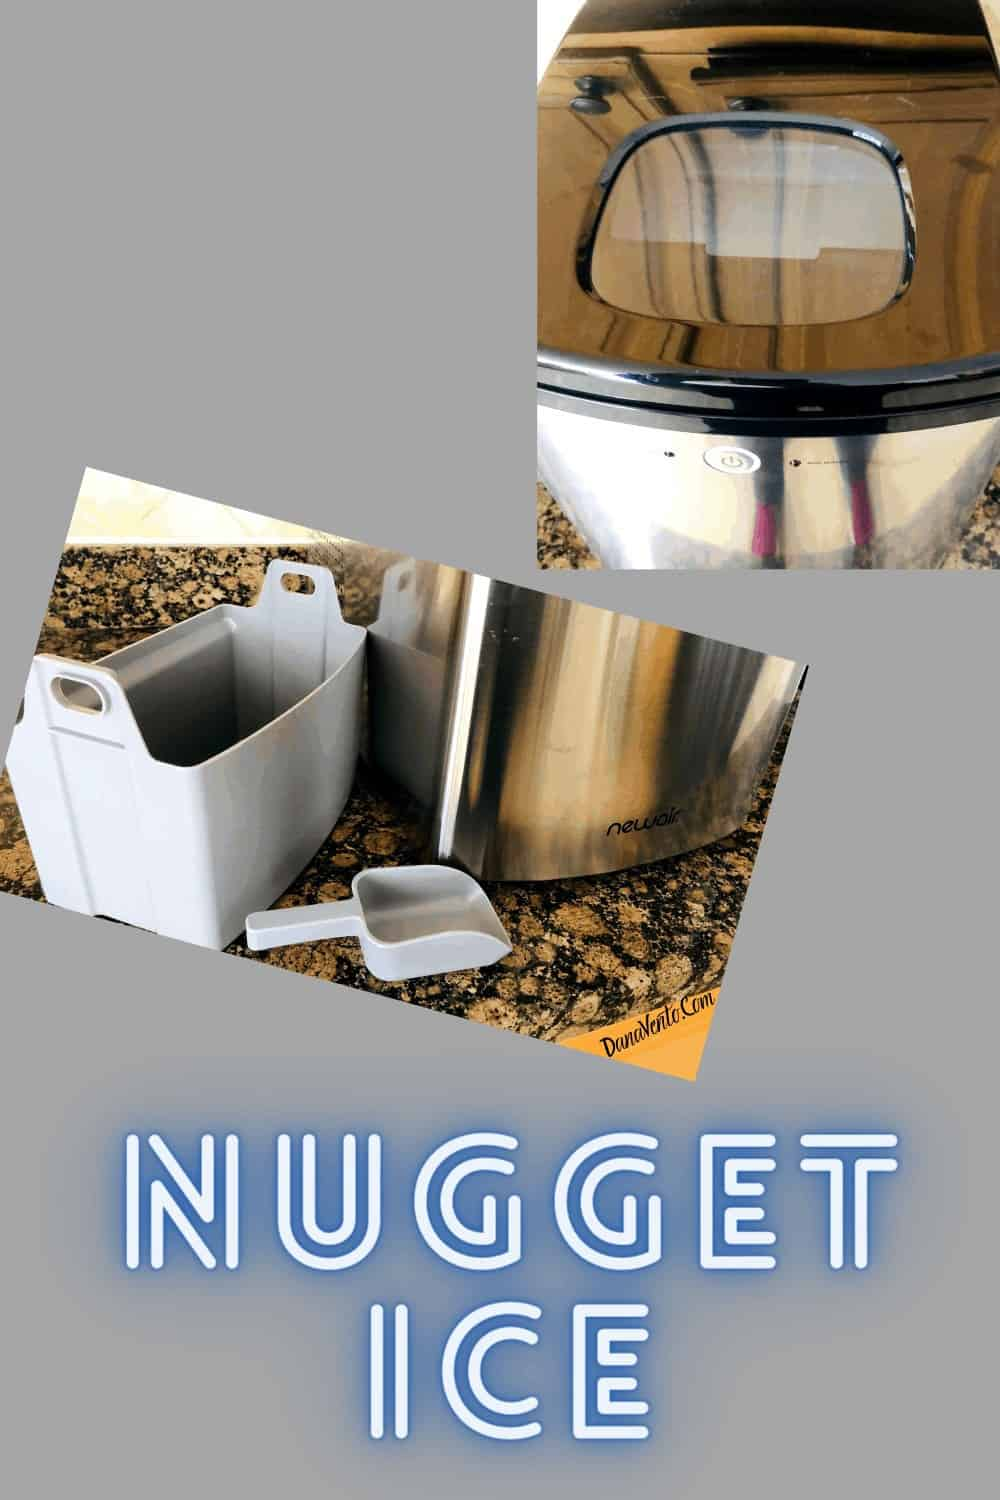 basket and scoop for nugget ice